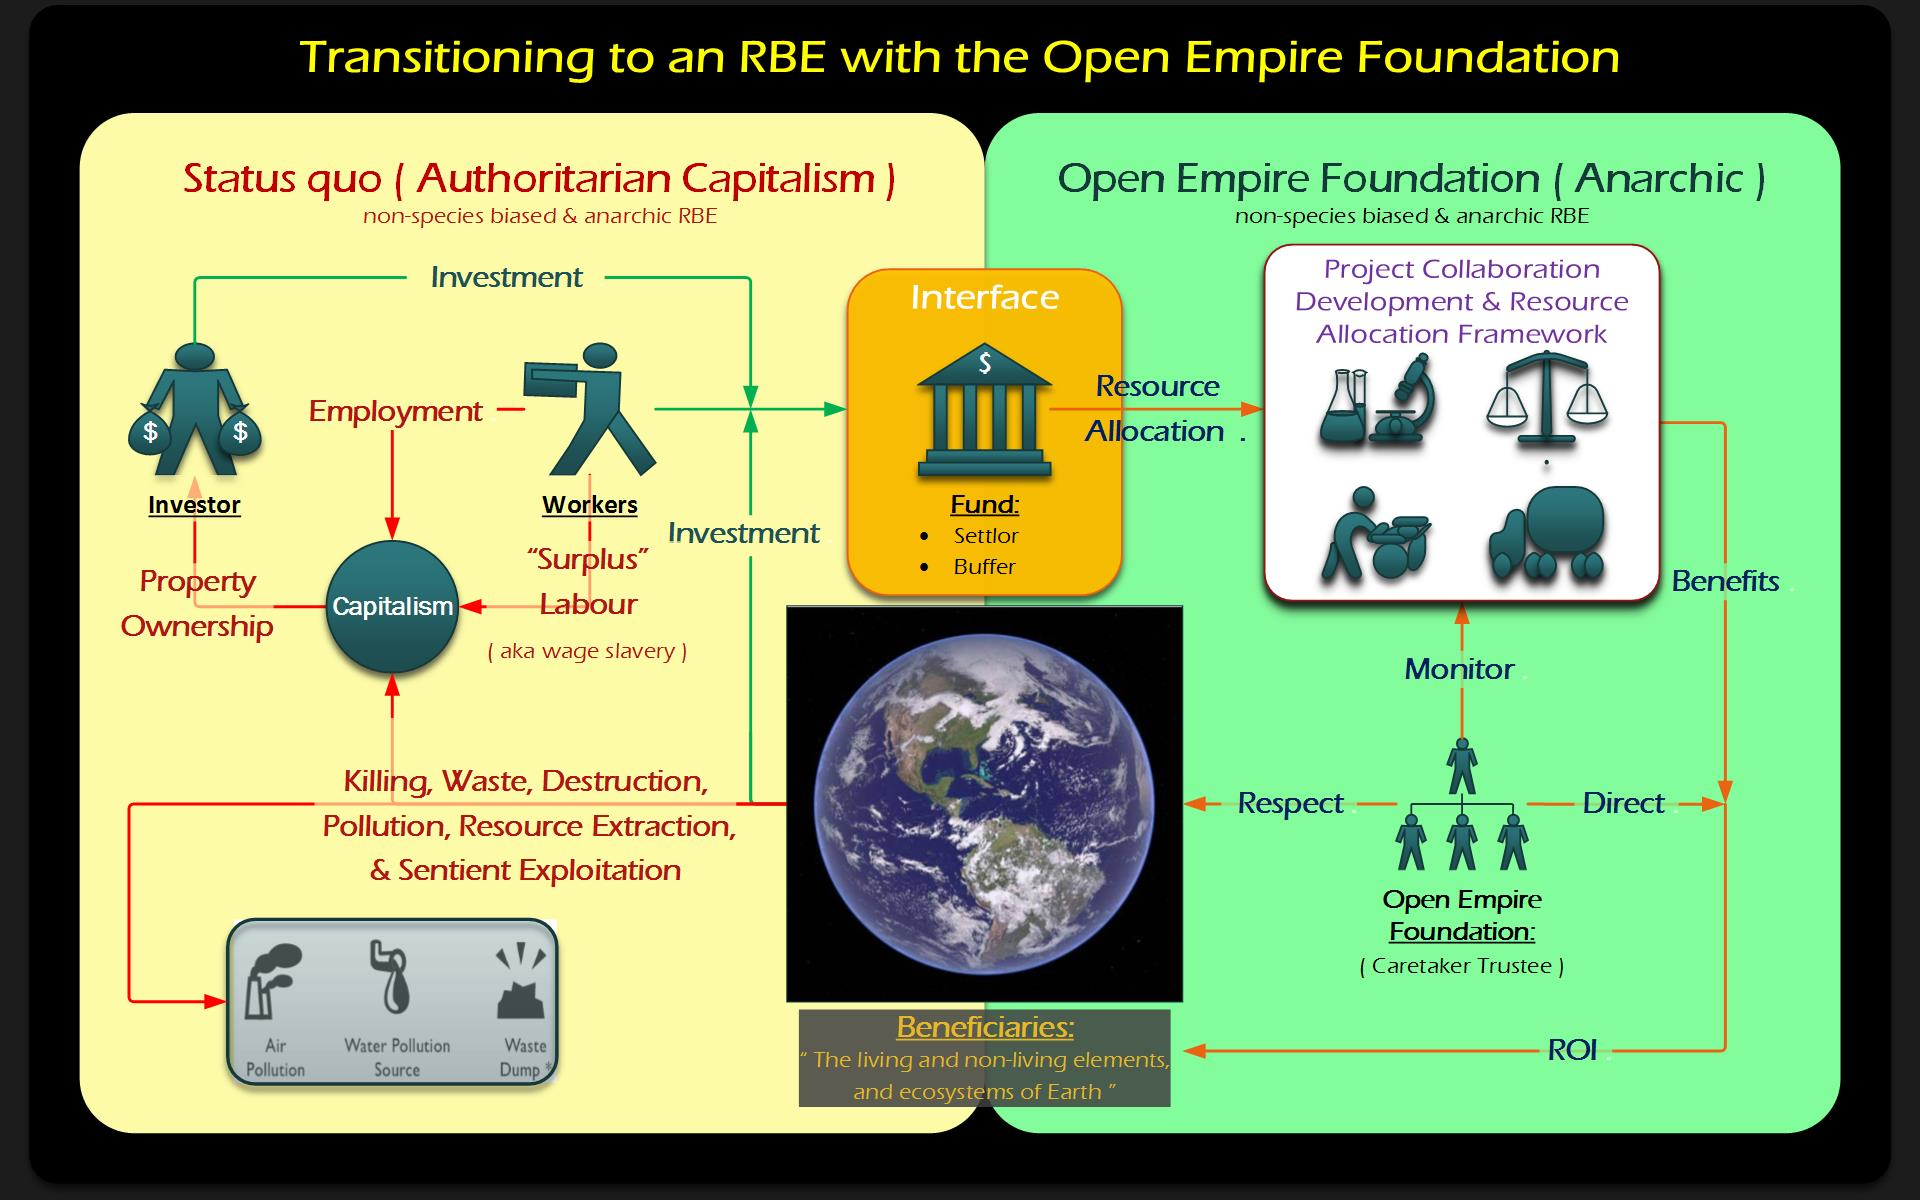 Open Empire Foundation RBE transition vision diagram